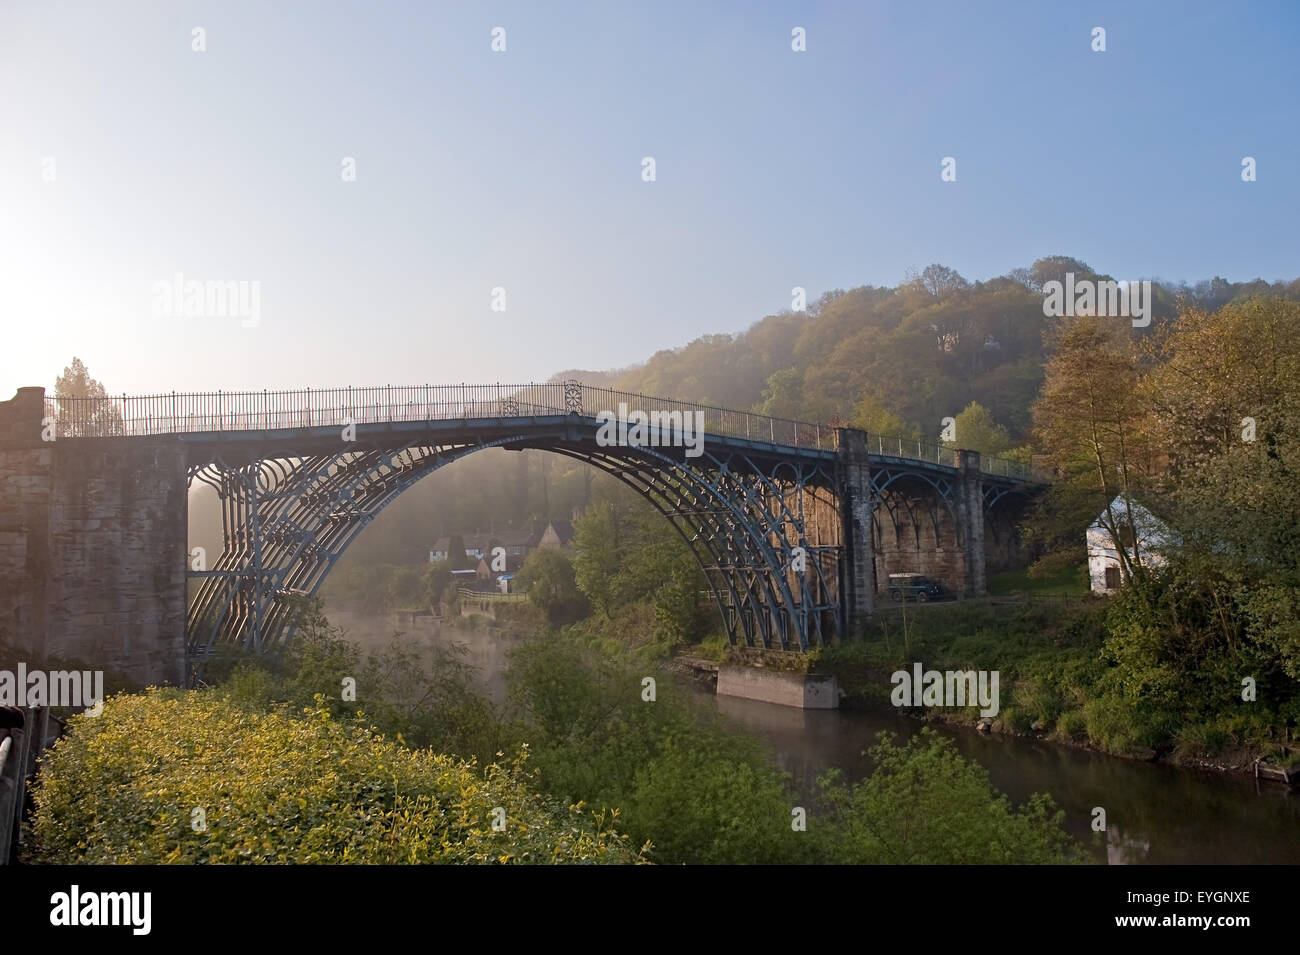 First iron bridge in the world was built by Abraham Darby III and crossed the River Severn at Ironbridge Shropshire - Stock Image